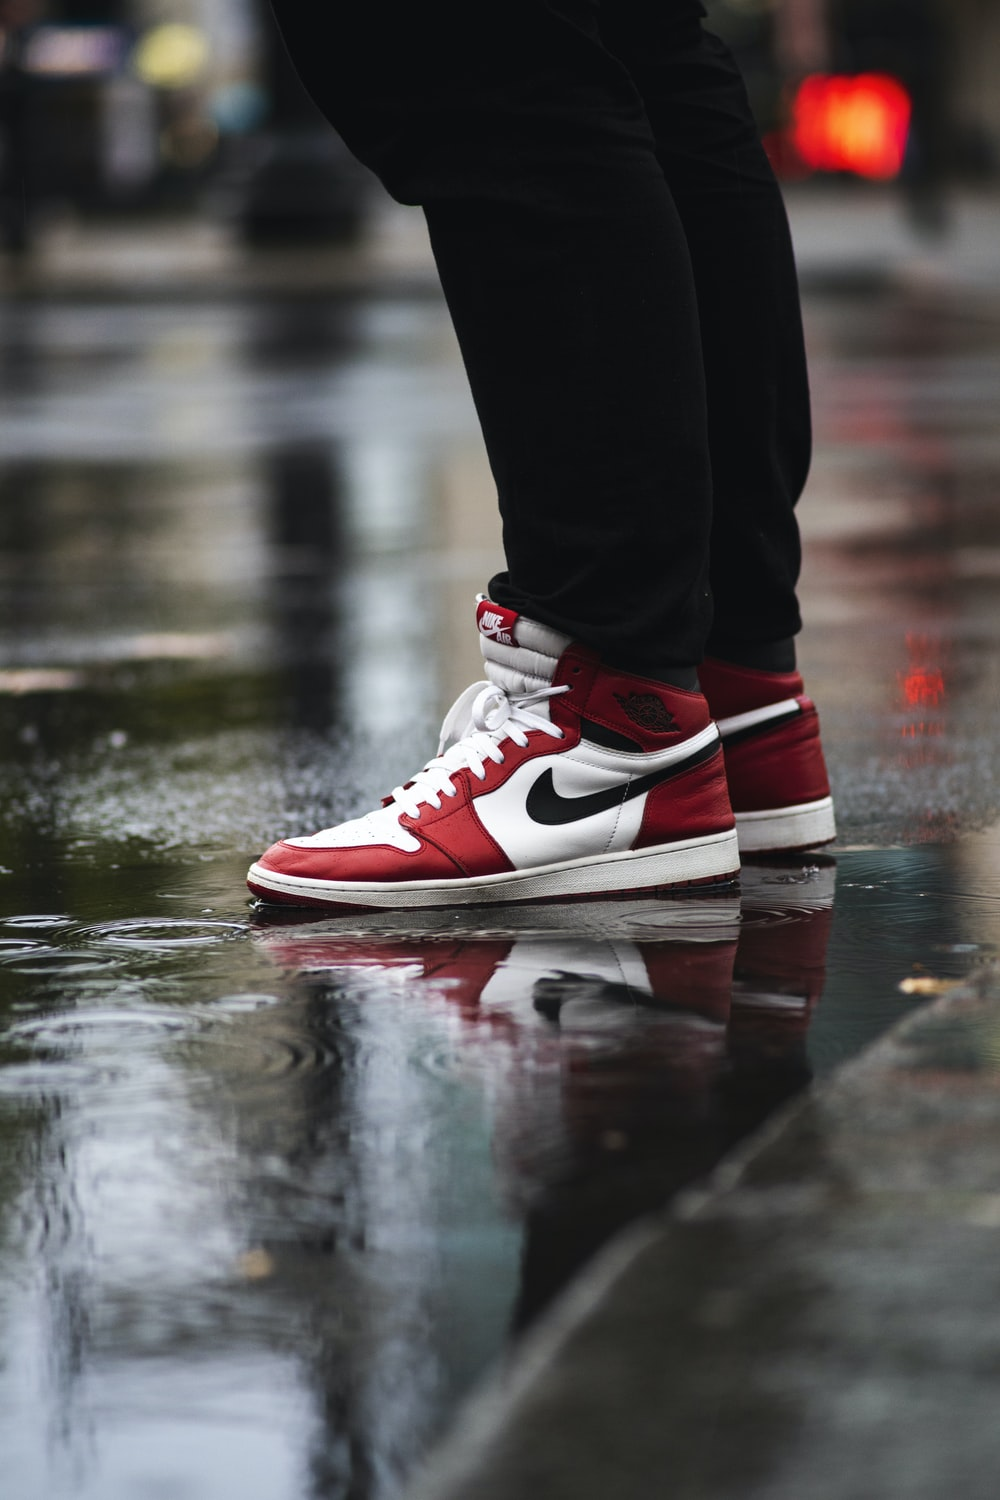 a9ef7bf1be2290 selective focus photography of person wearing white-red-and-black Air  Jordan 1 s